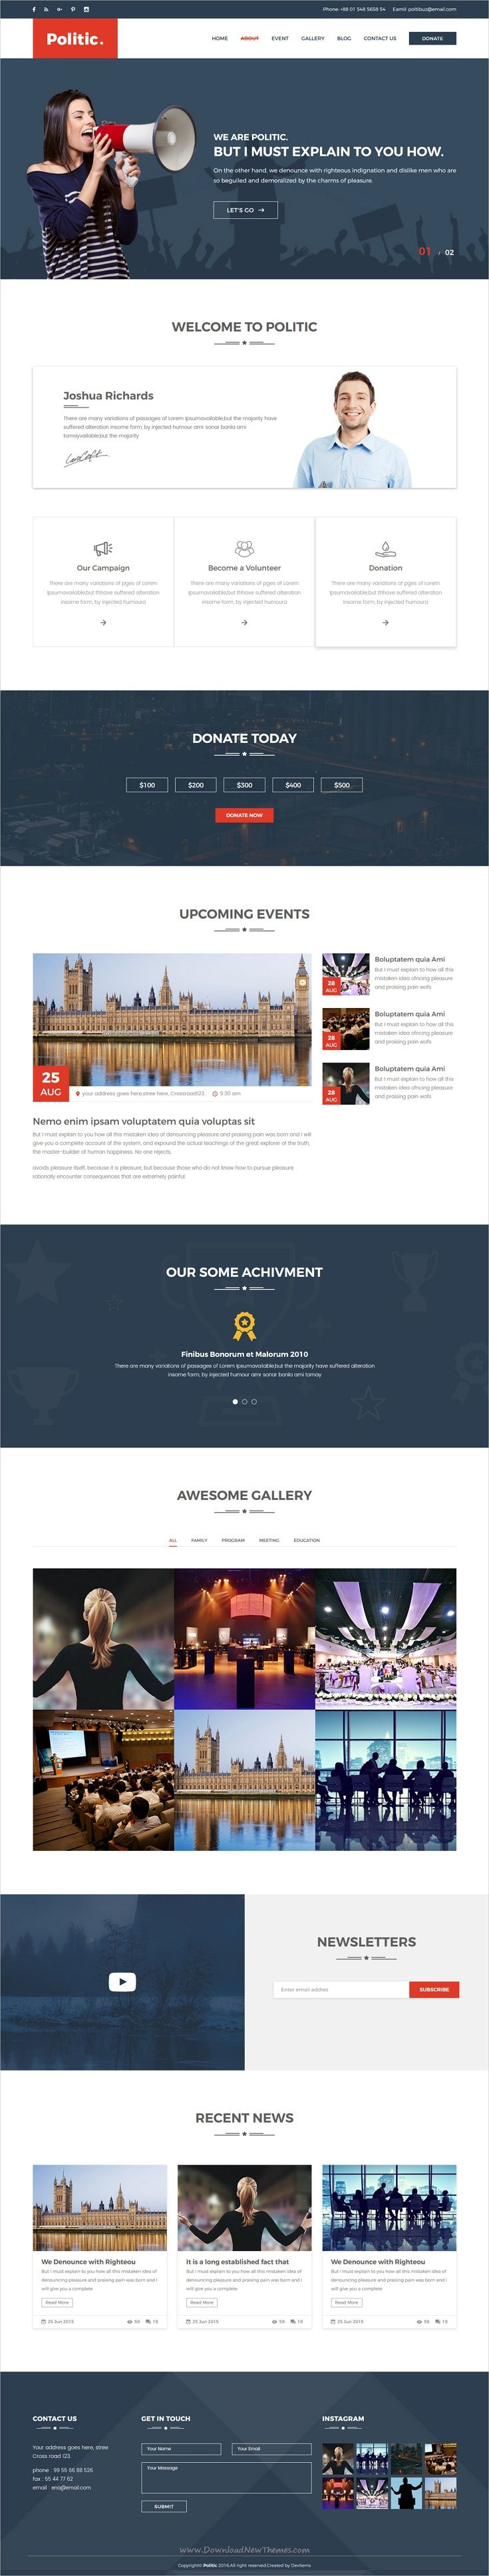 Politic is an awesome design responsive #HTML #bootstrap template for #political campaign, Super PAC, #Candidate, organization or political parties website download now➩ https://themeforest.net/item/politic-political-html-template-with-sass/19328229?ref=Datasata